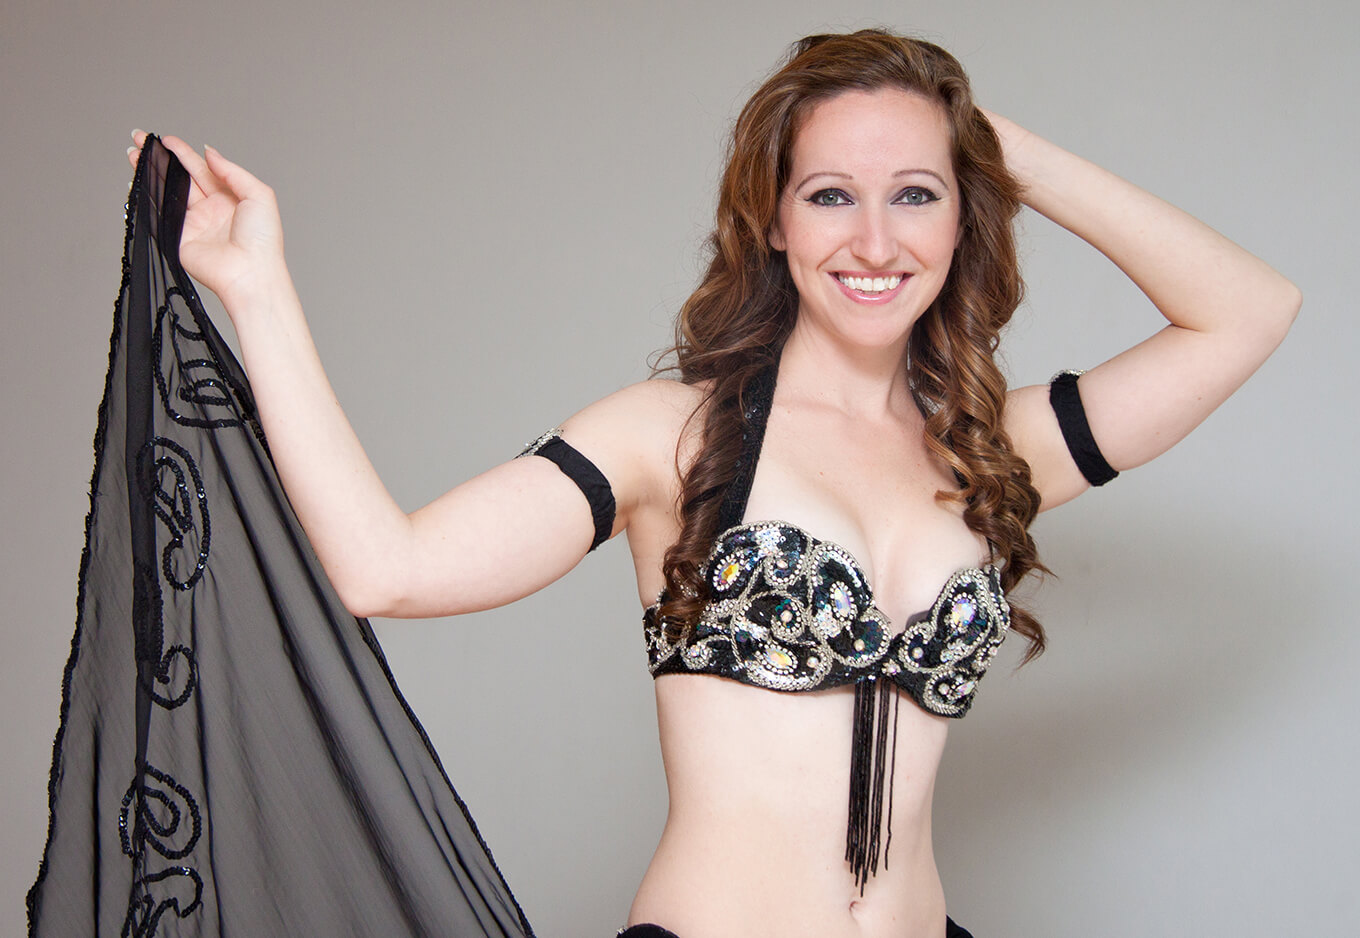 Donna showcasing one of her black belly dance outfits